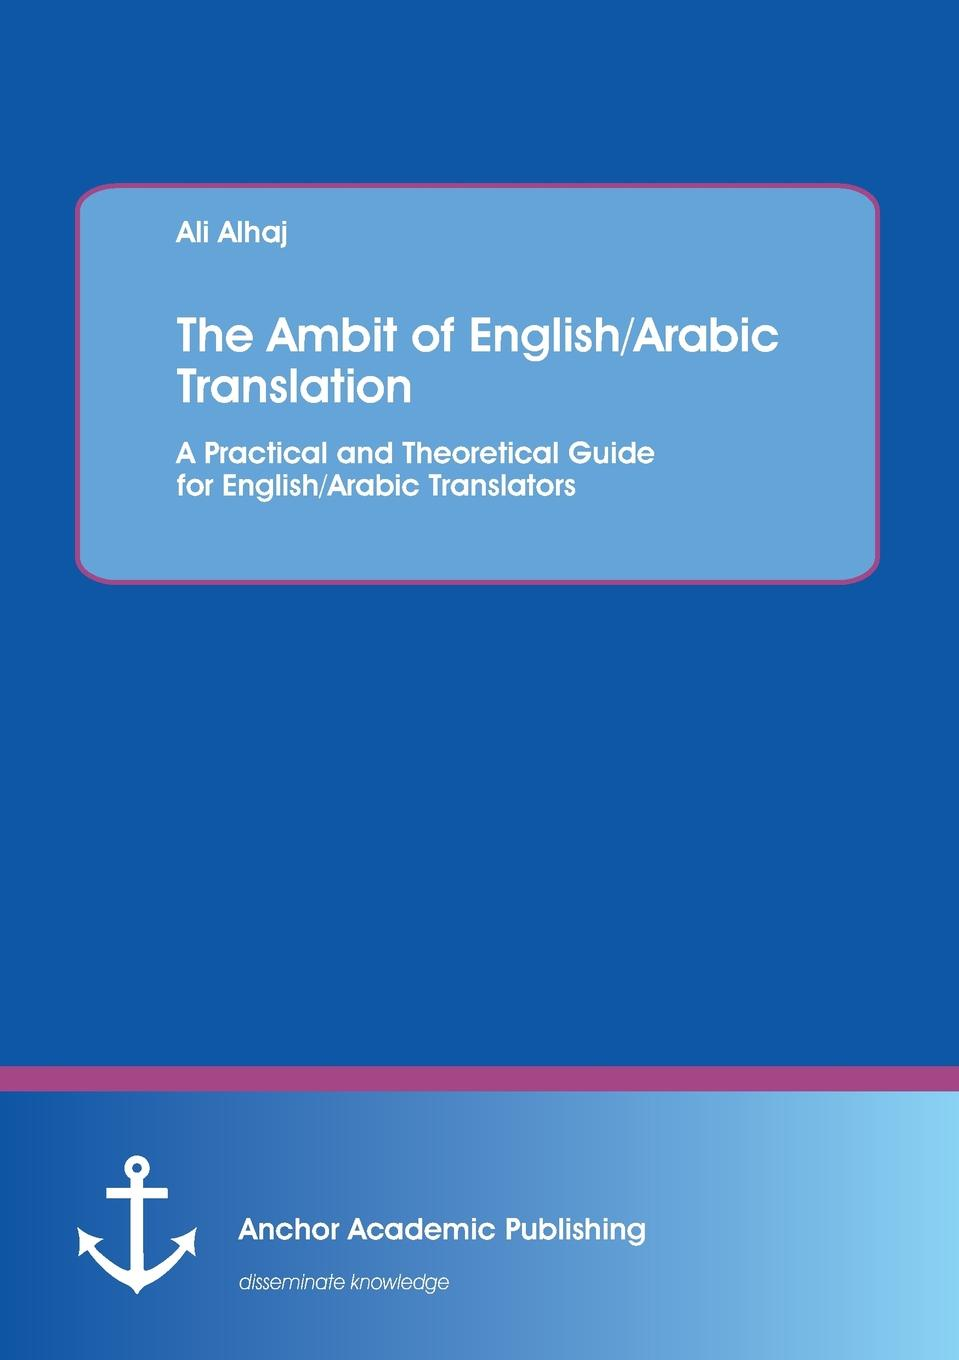 Ali Alhaj The Ambit of English/Arabic Translation naghmeh jahansooz and reza kafipour content schema and translation